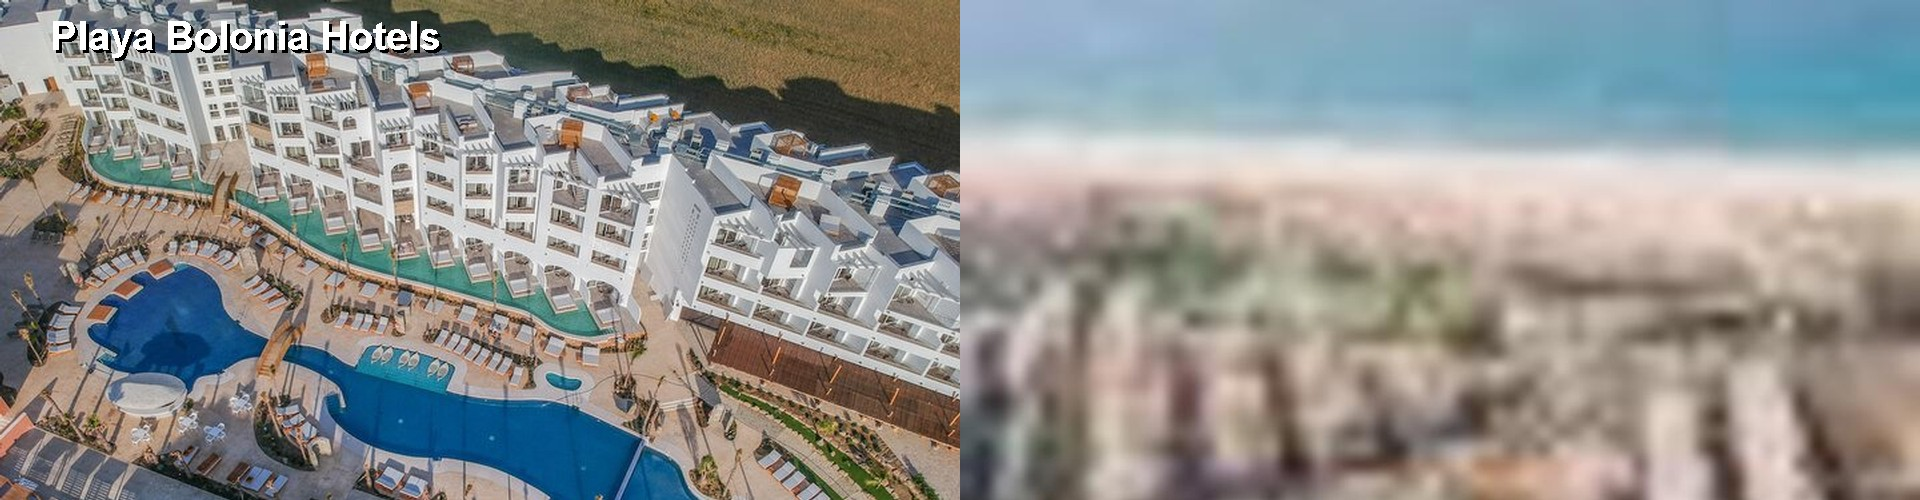 5 Best Hotels near Playa Bolonia